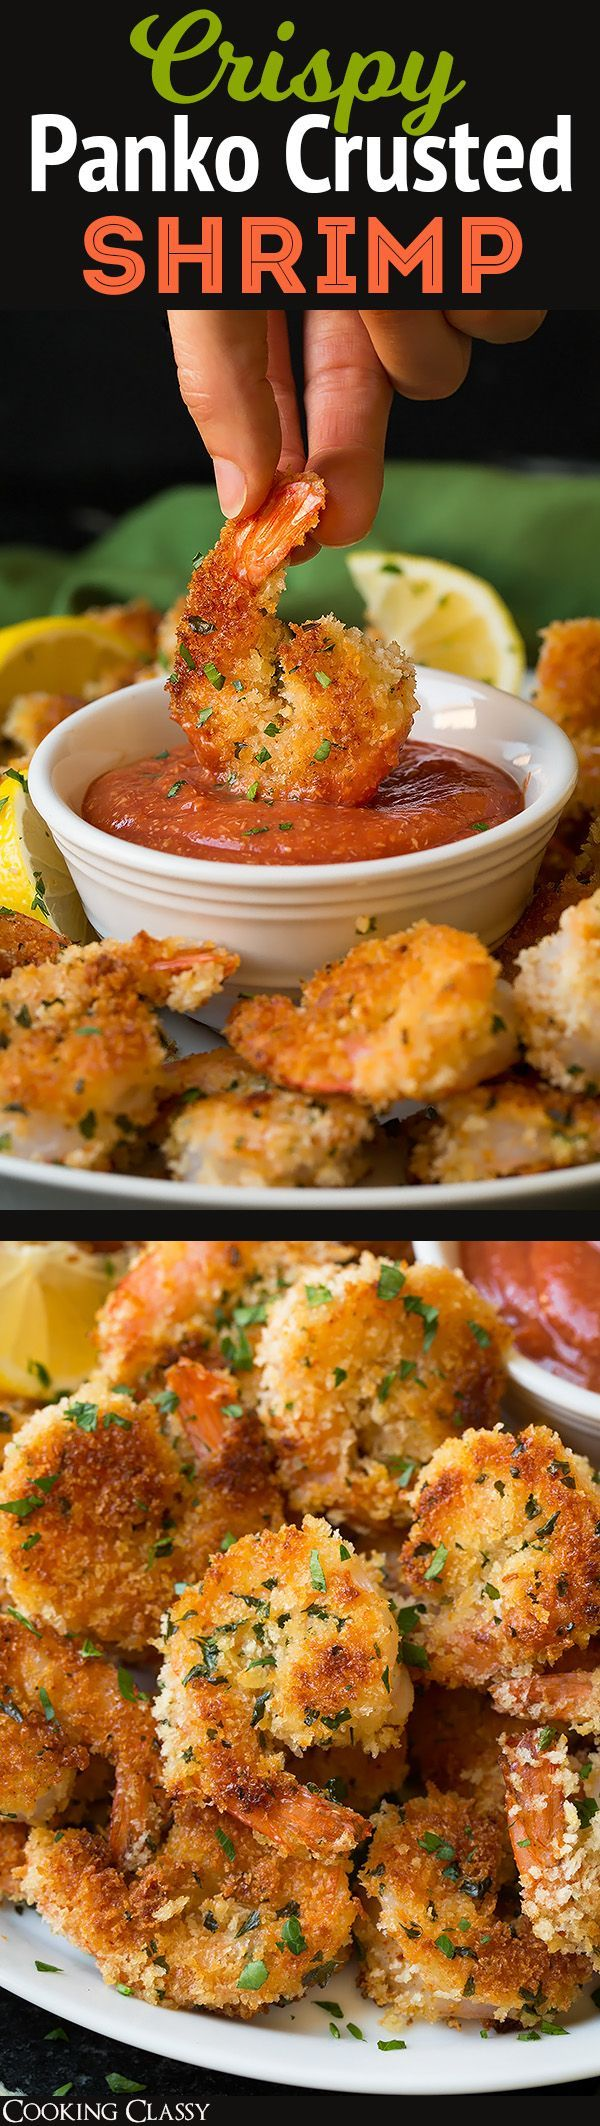 Crispy Panko Shrimp with Cocktail Sauce - perfect party food! These are perfectly crisp and so delicious!